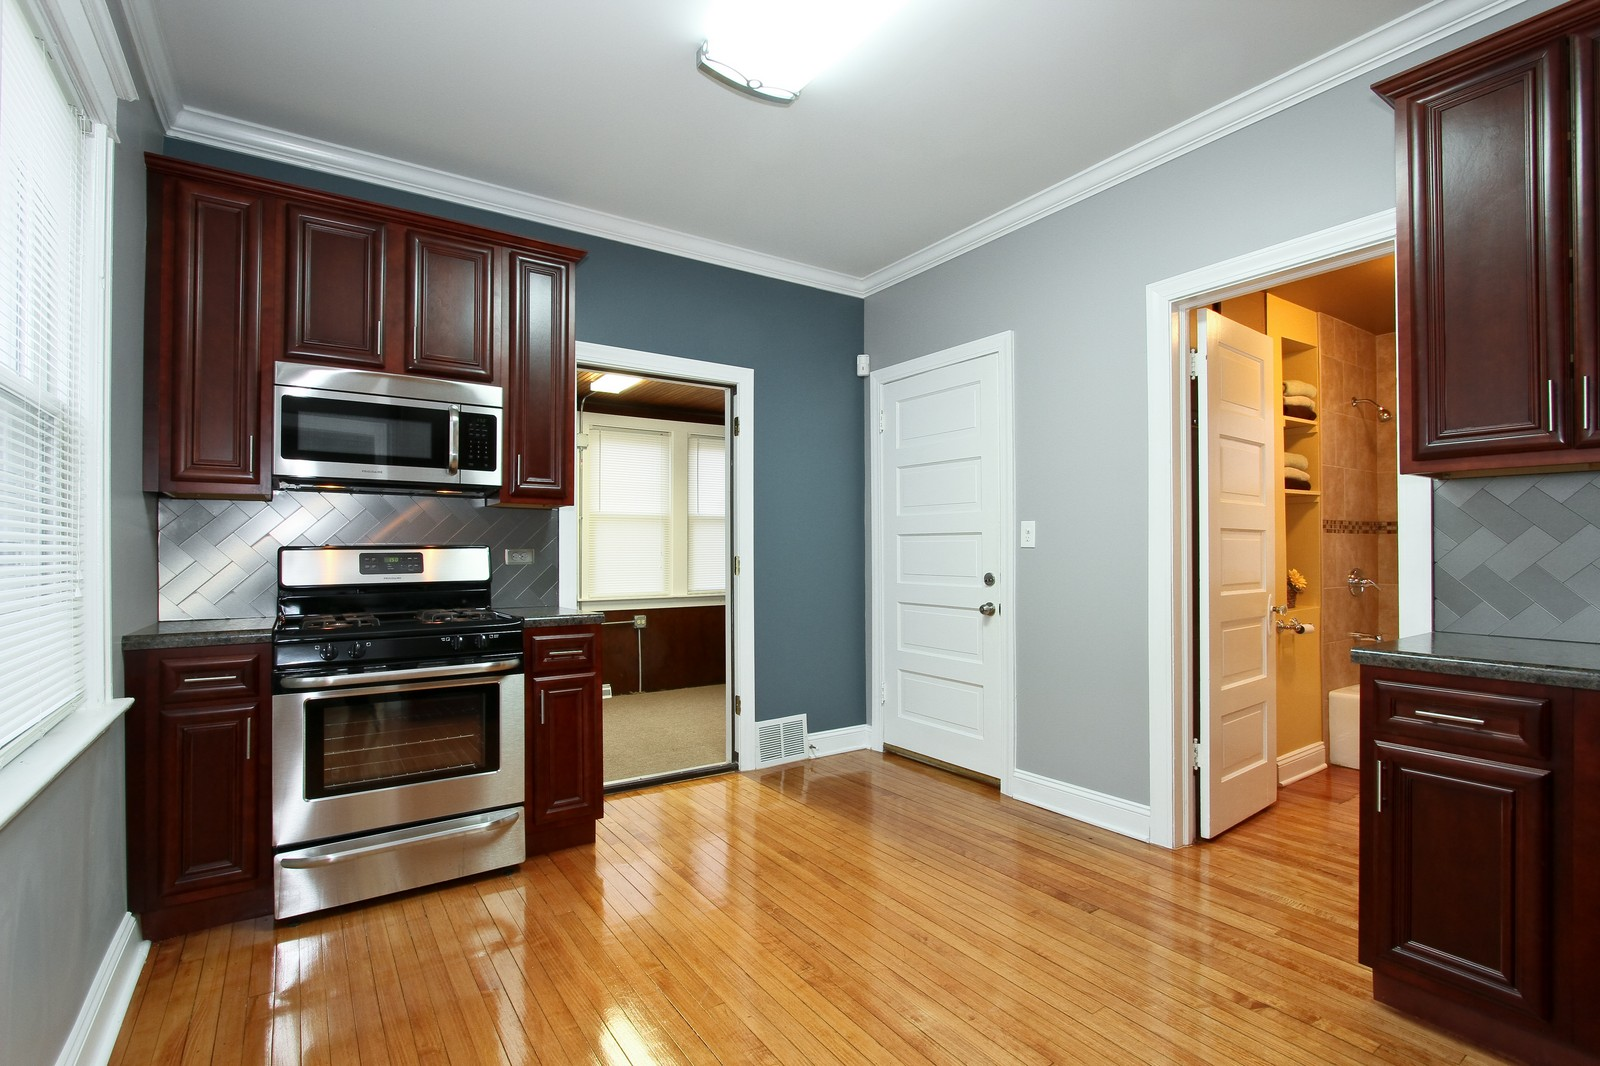 Real Estate Photography - 11838 S Wallace, Chicago, IL, 60628 - Kitchen